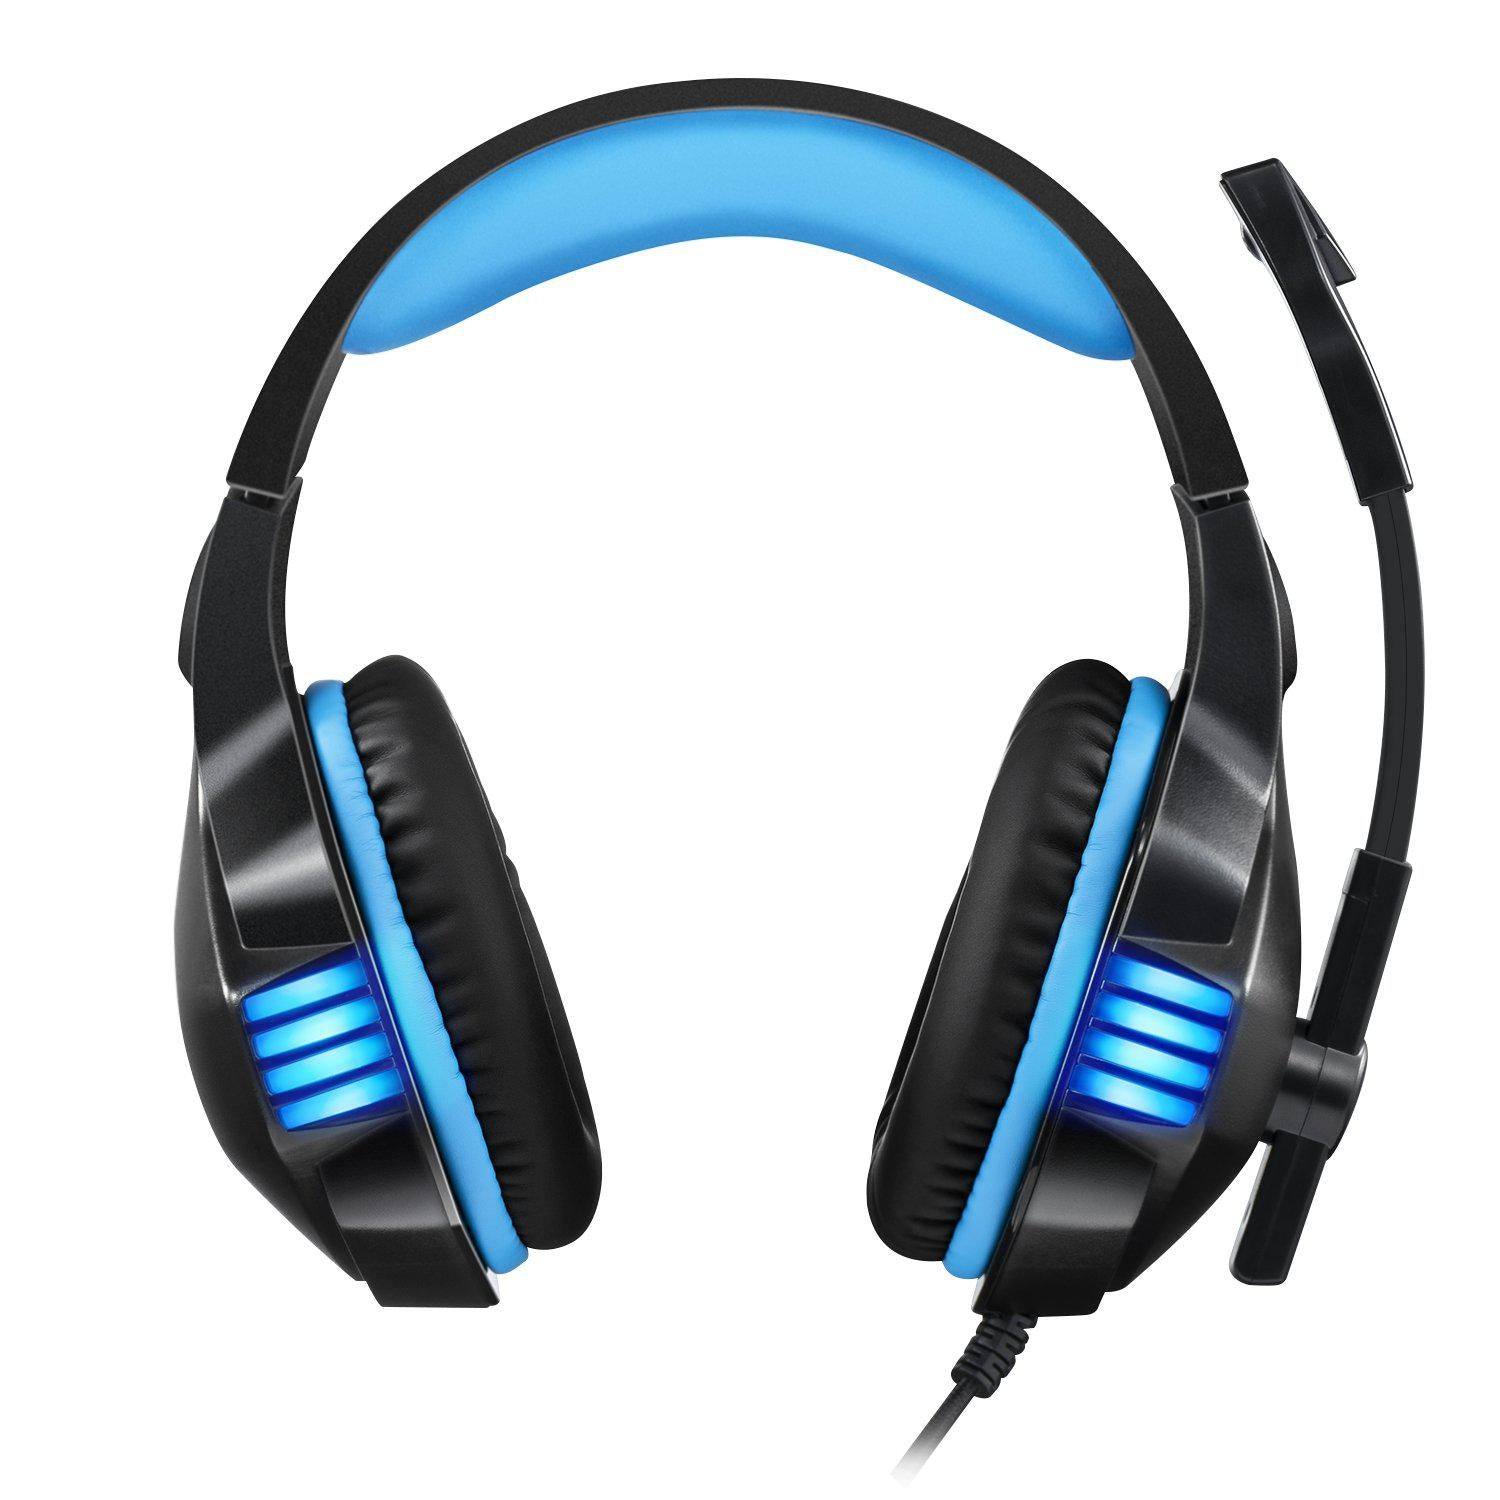 Arkartech V3 Stereo Gaming Headset With Adjustable